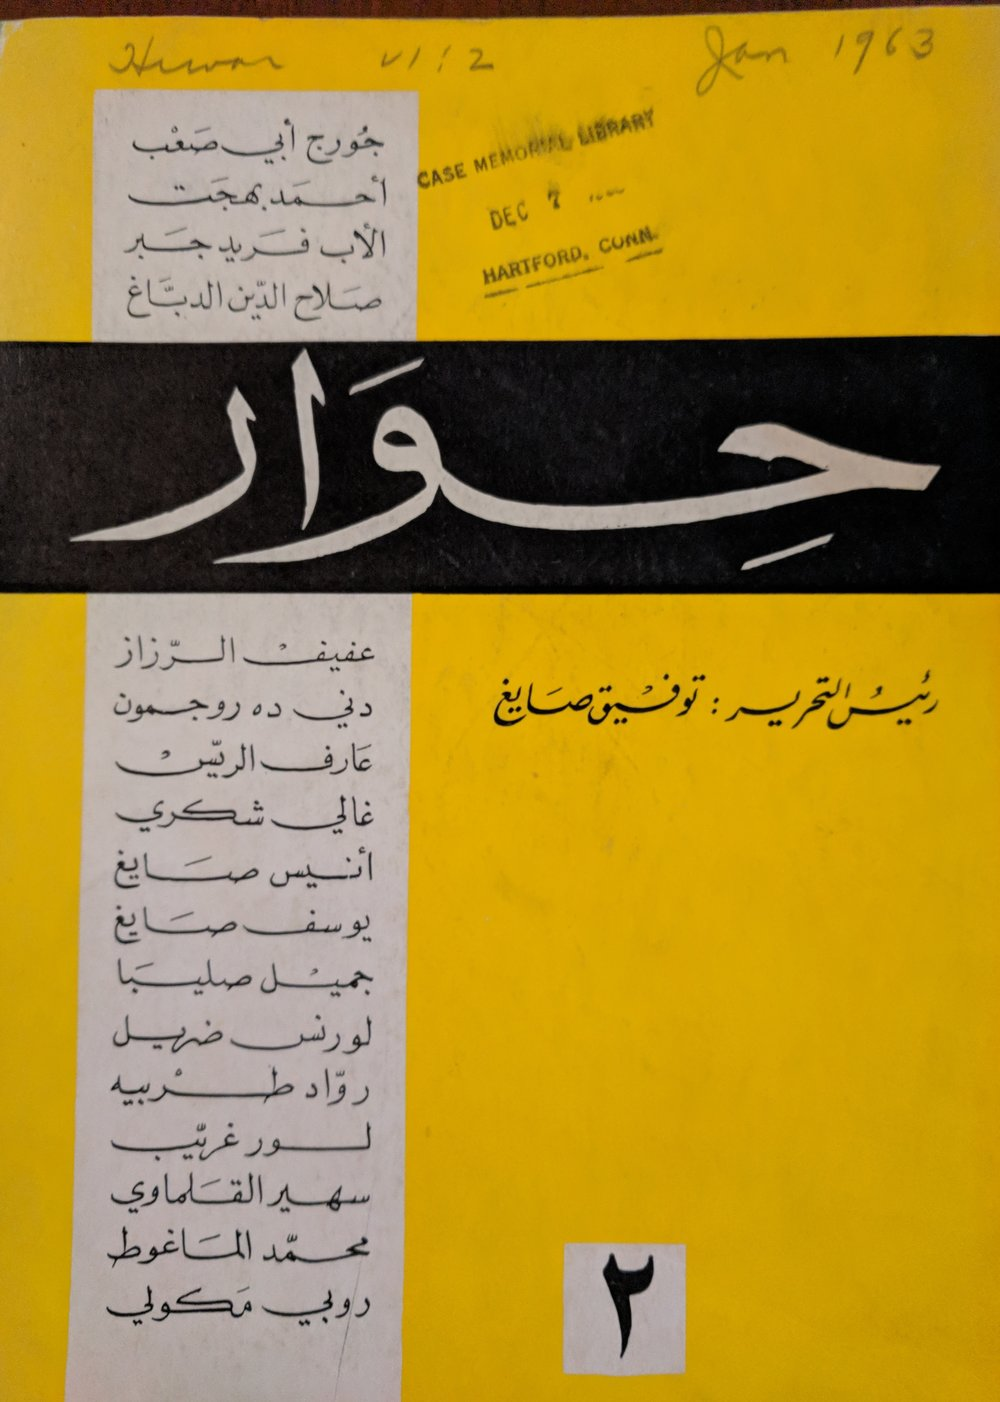 @tlthom happens to have a bunch of issues of  Ḥiwār , Tawfīq Ṣayigh's journal that became embroiled in a controversy about CIA funding through the Congress for Cultural Freedom. There's some amazing stuff in these, so let's have a look for several weeks at what we find in them.